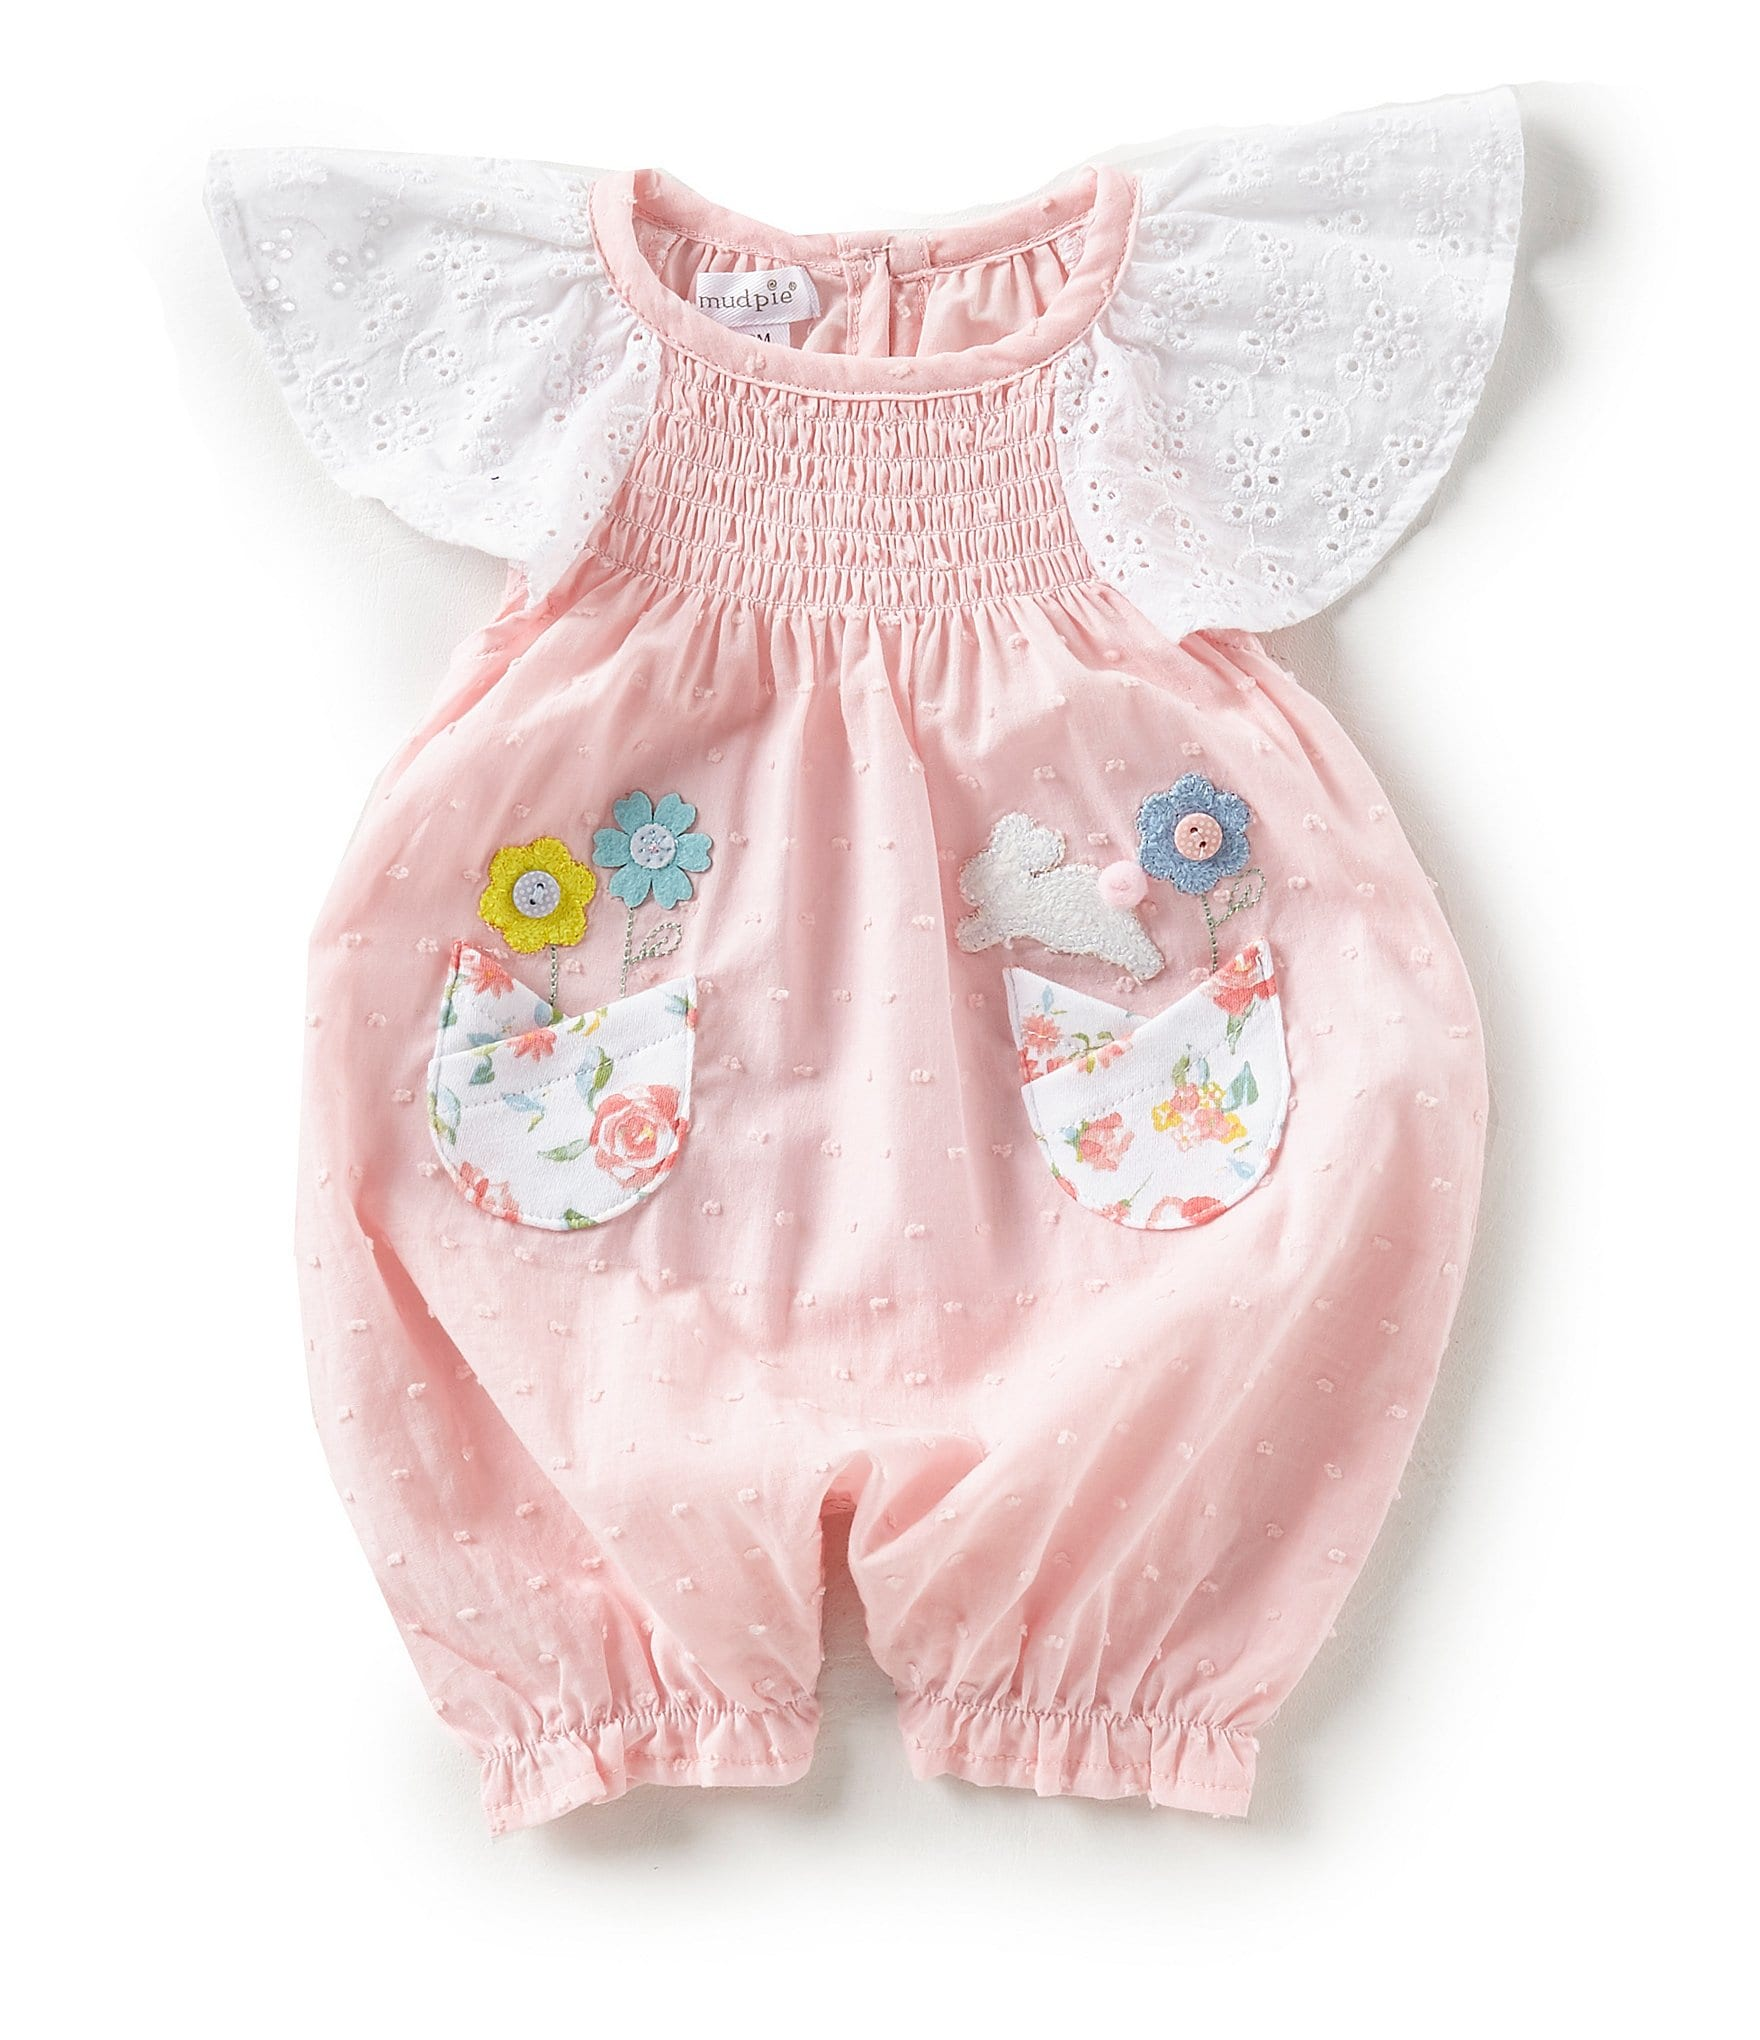 viplikecuatoi.ml: mud pie sale. From The Community. Mud Pie Baby Girls' Seasonal One Piece Crawler Bodysuit Set. by Mud Pie. $ - $ $ 11 $ 29 95 Prime. FREE Shipping on eligible orders. Some sizes/colors are Prime eligible. 5 out of 5 stars 1. Mud Pie Lobster Salt and Pepper Set.